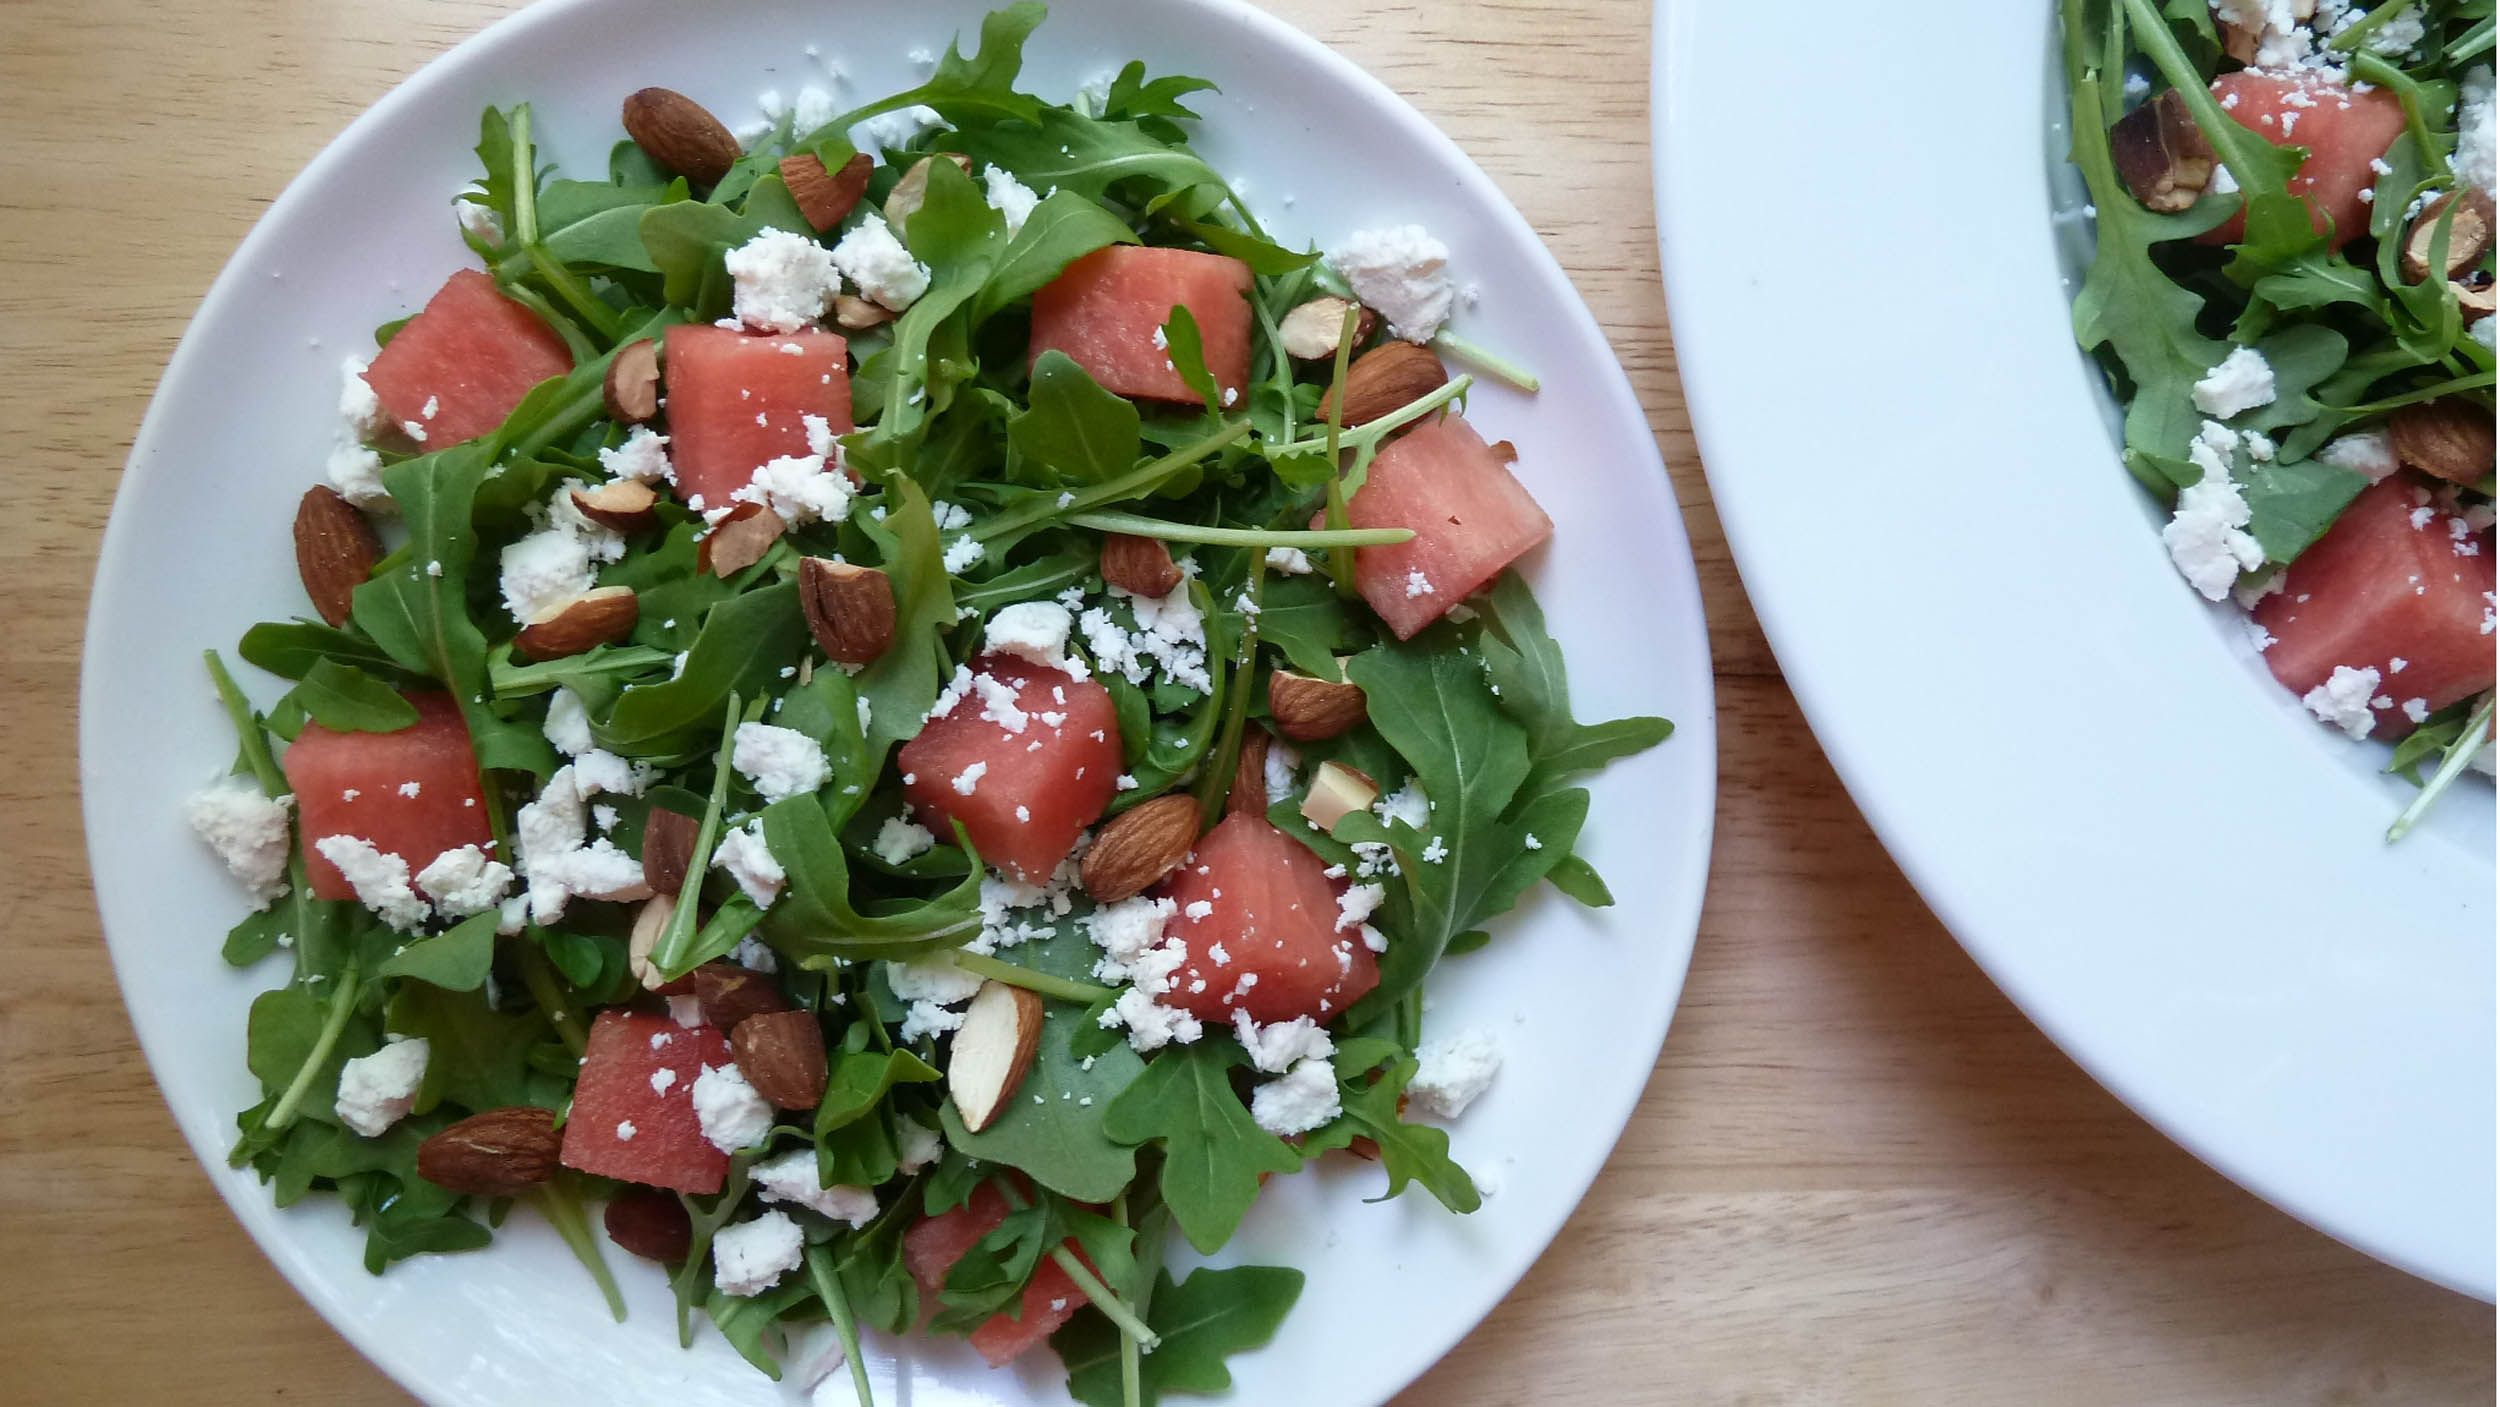 This simple and healthy watermelon salad makes a great summer addition to any meal.